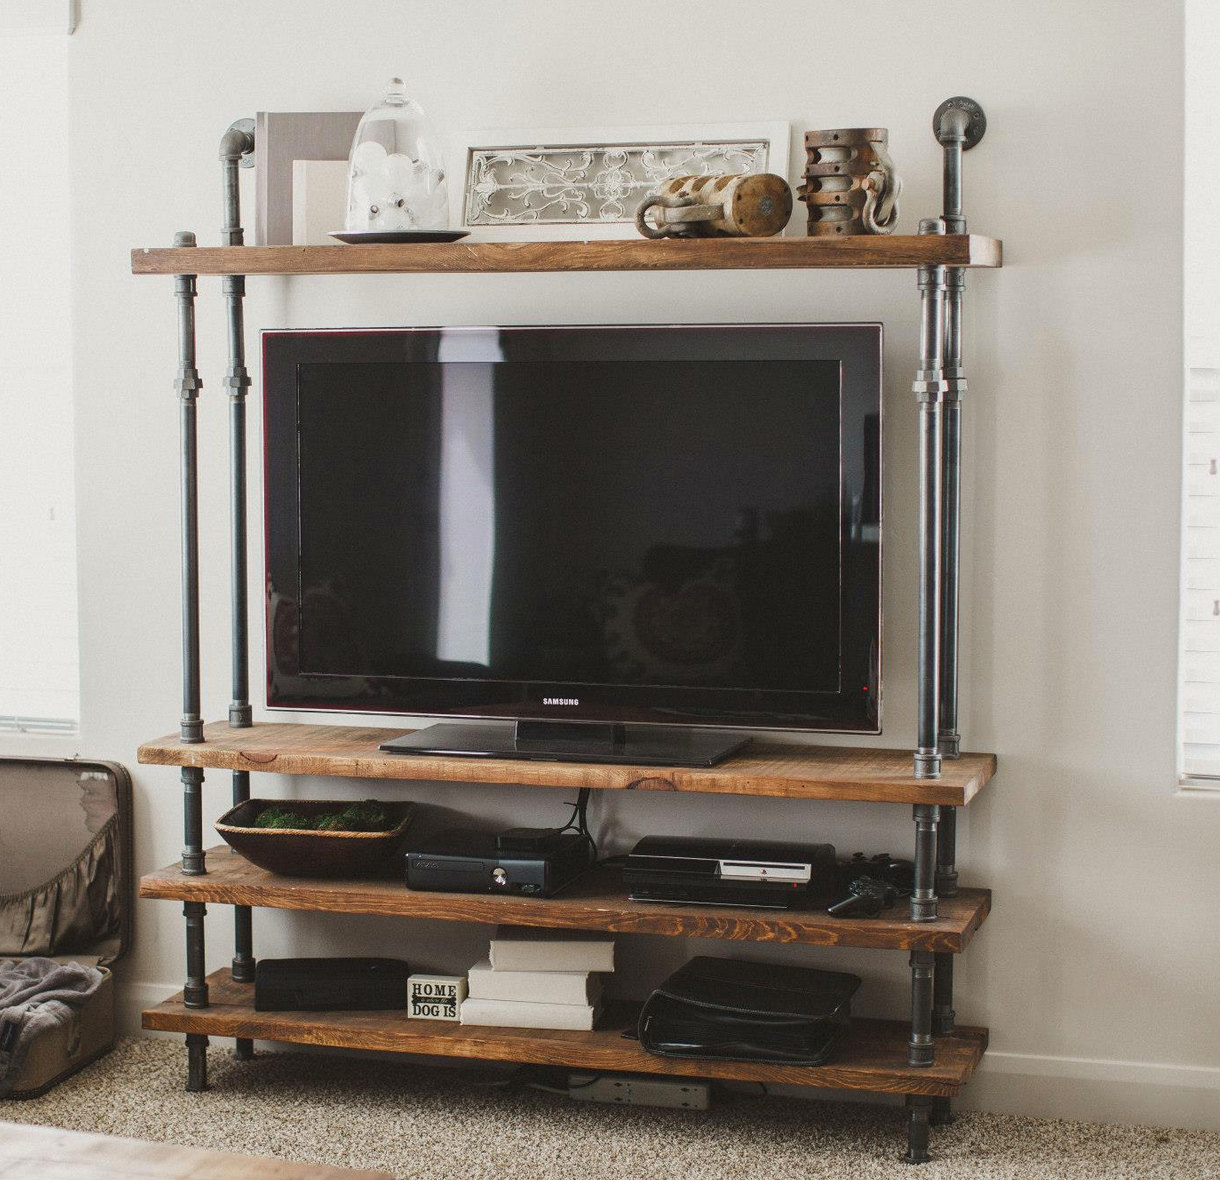 How to choose a tv stand - Media consoles for small spaces plan ...